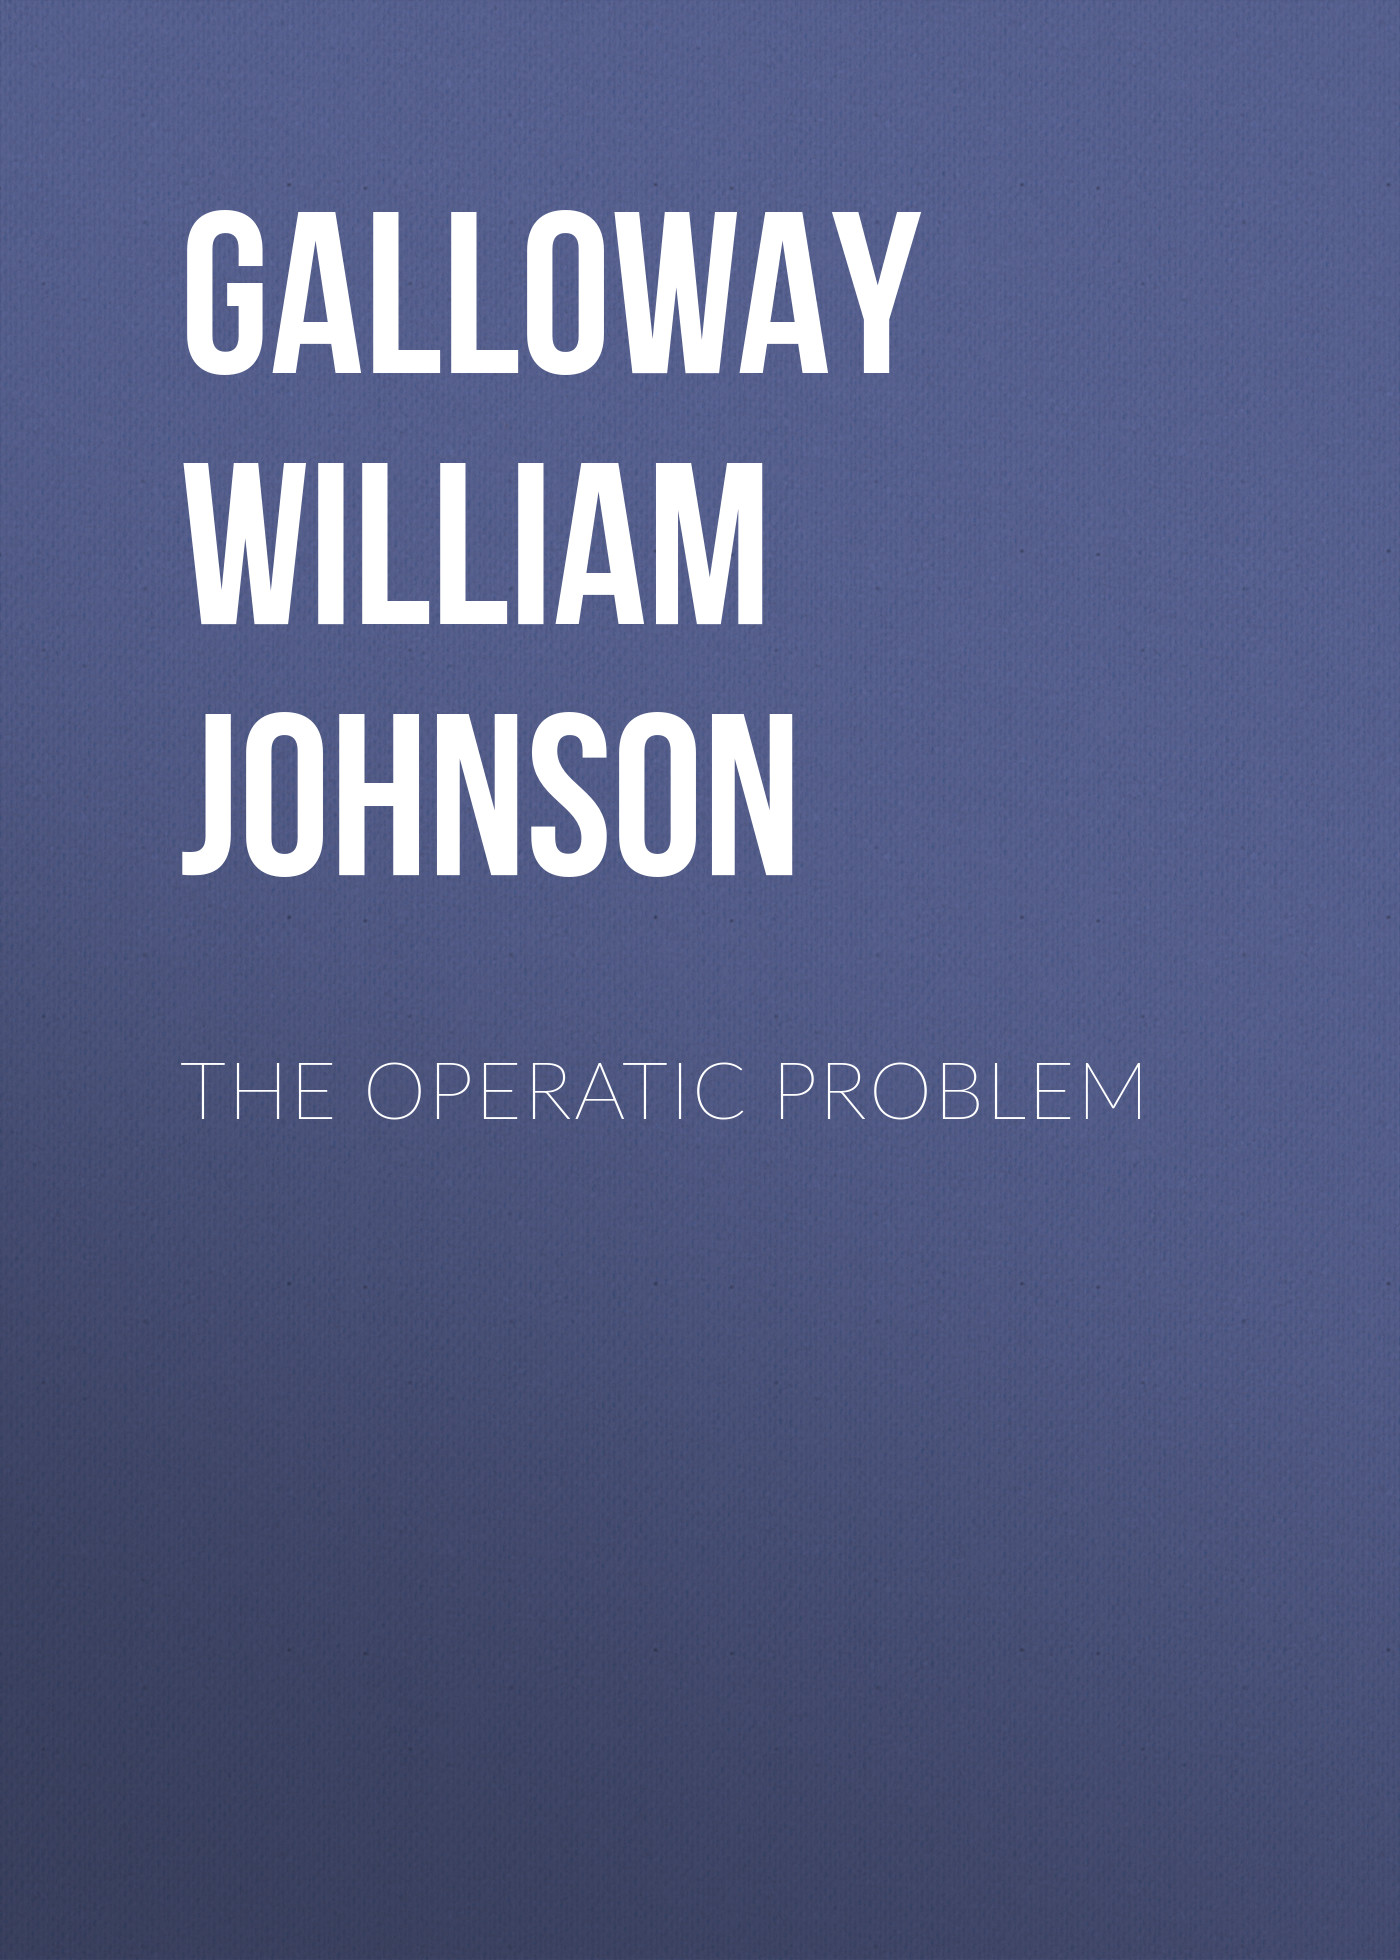 Galloway William Johnson The Operatic Problem jamaica jamaica no problem